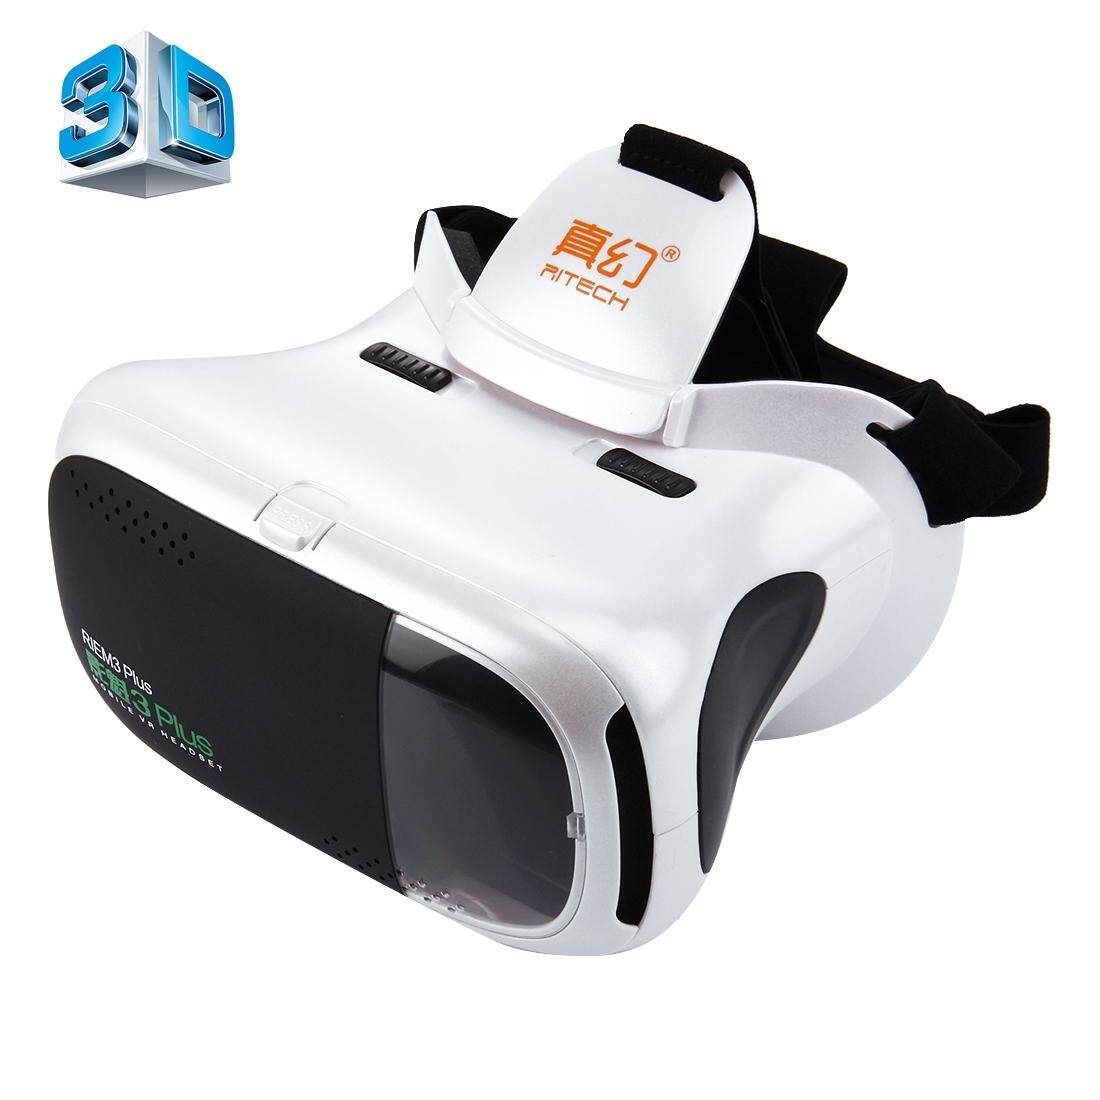 RITECH RIEM3 Plus 3D VR Virtual Reality Headset Mobile 360 Degrees Video Private Cinema Glasses Helmet with AR Augment Reality Window for 4.7-6 inch Smartphones - intl